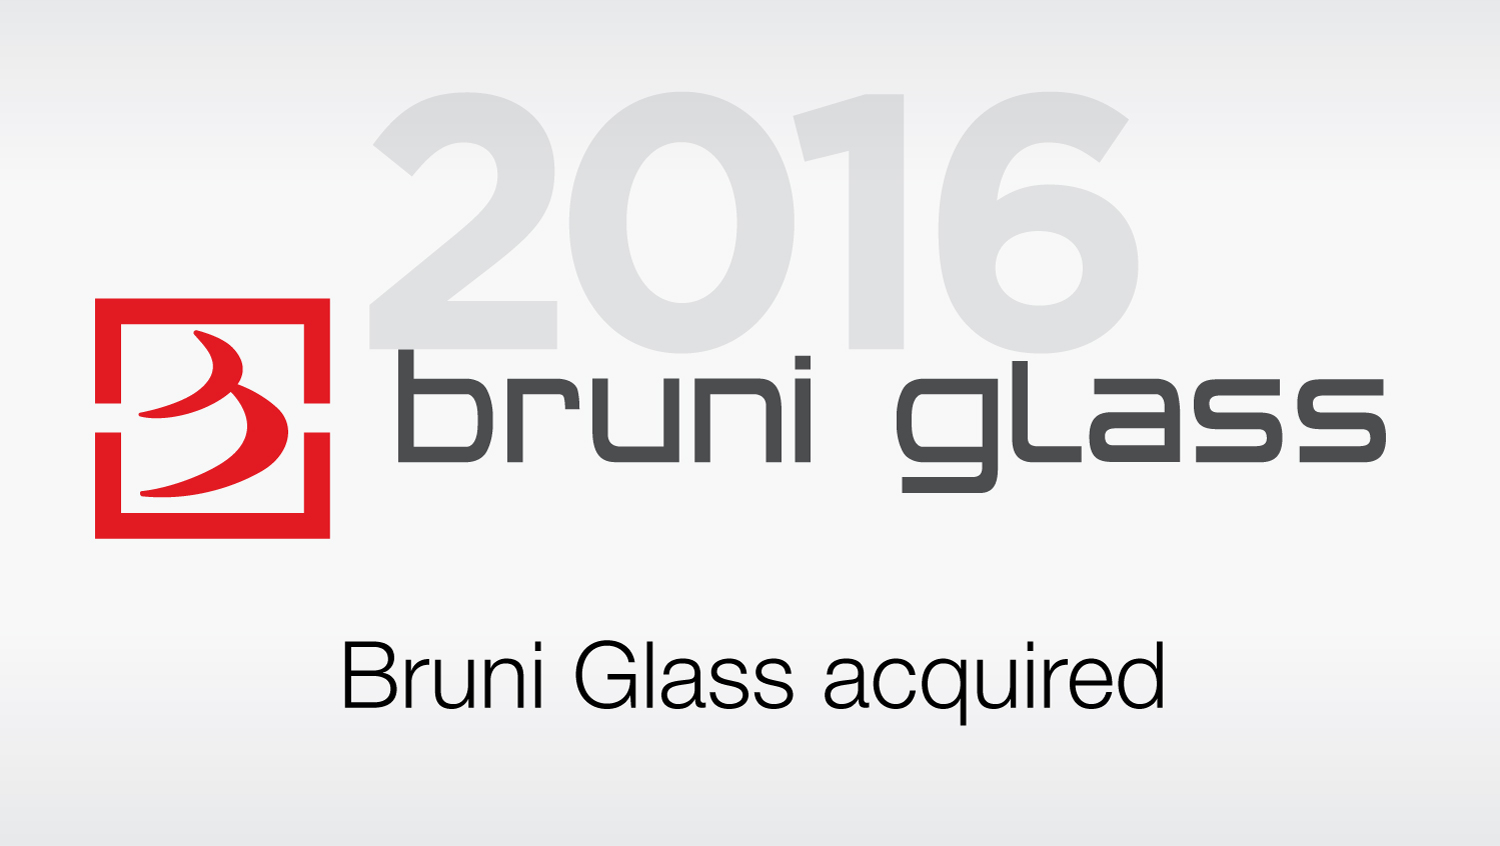 Bruni Glass acquired